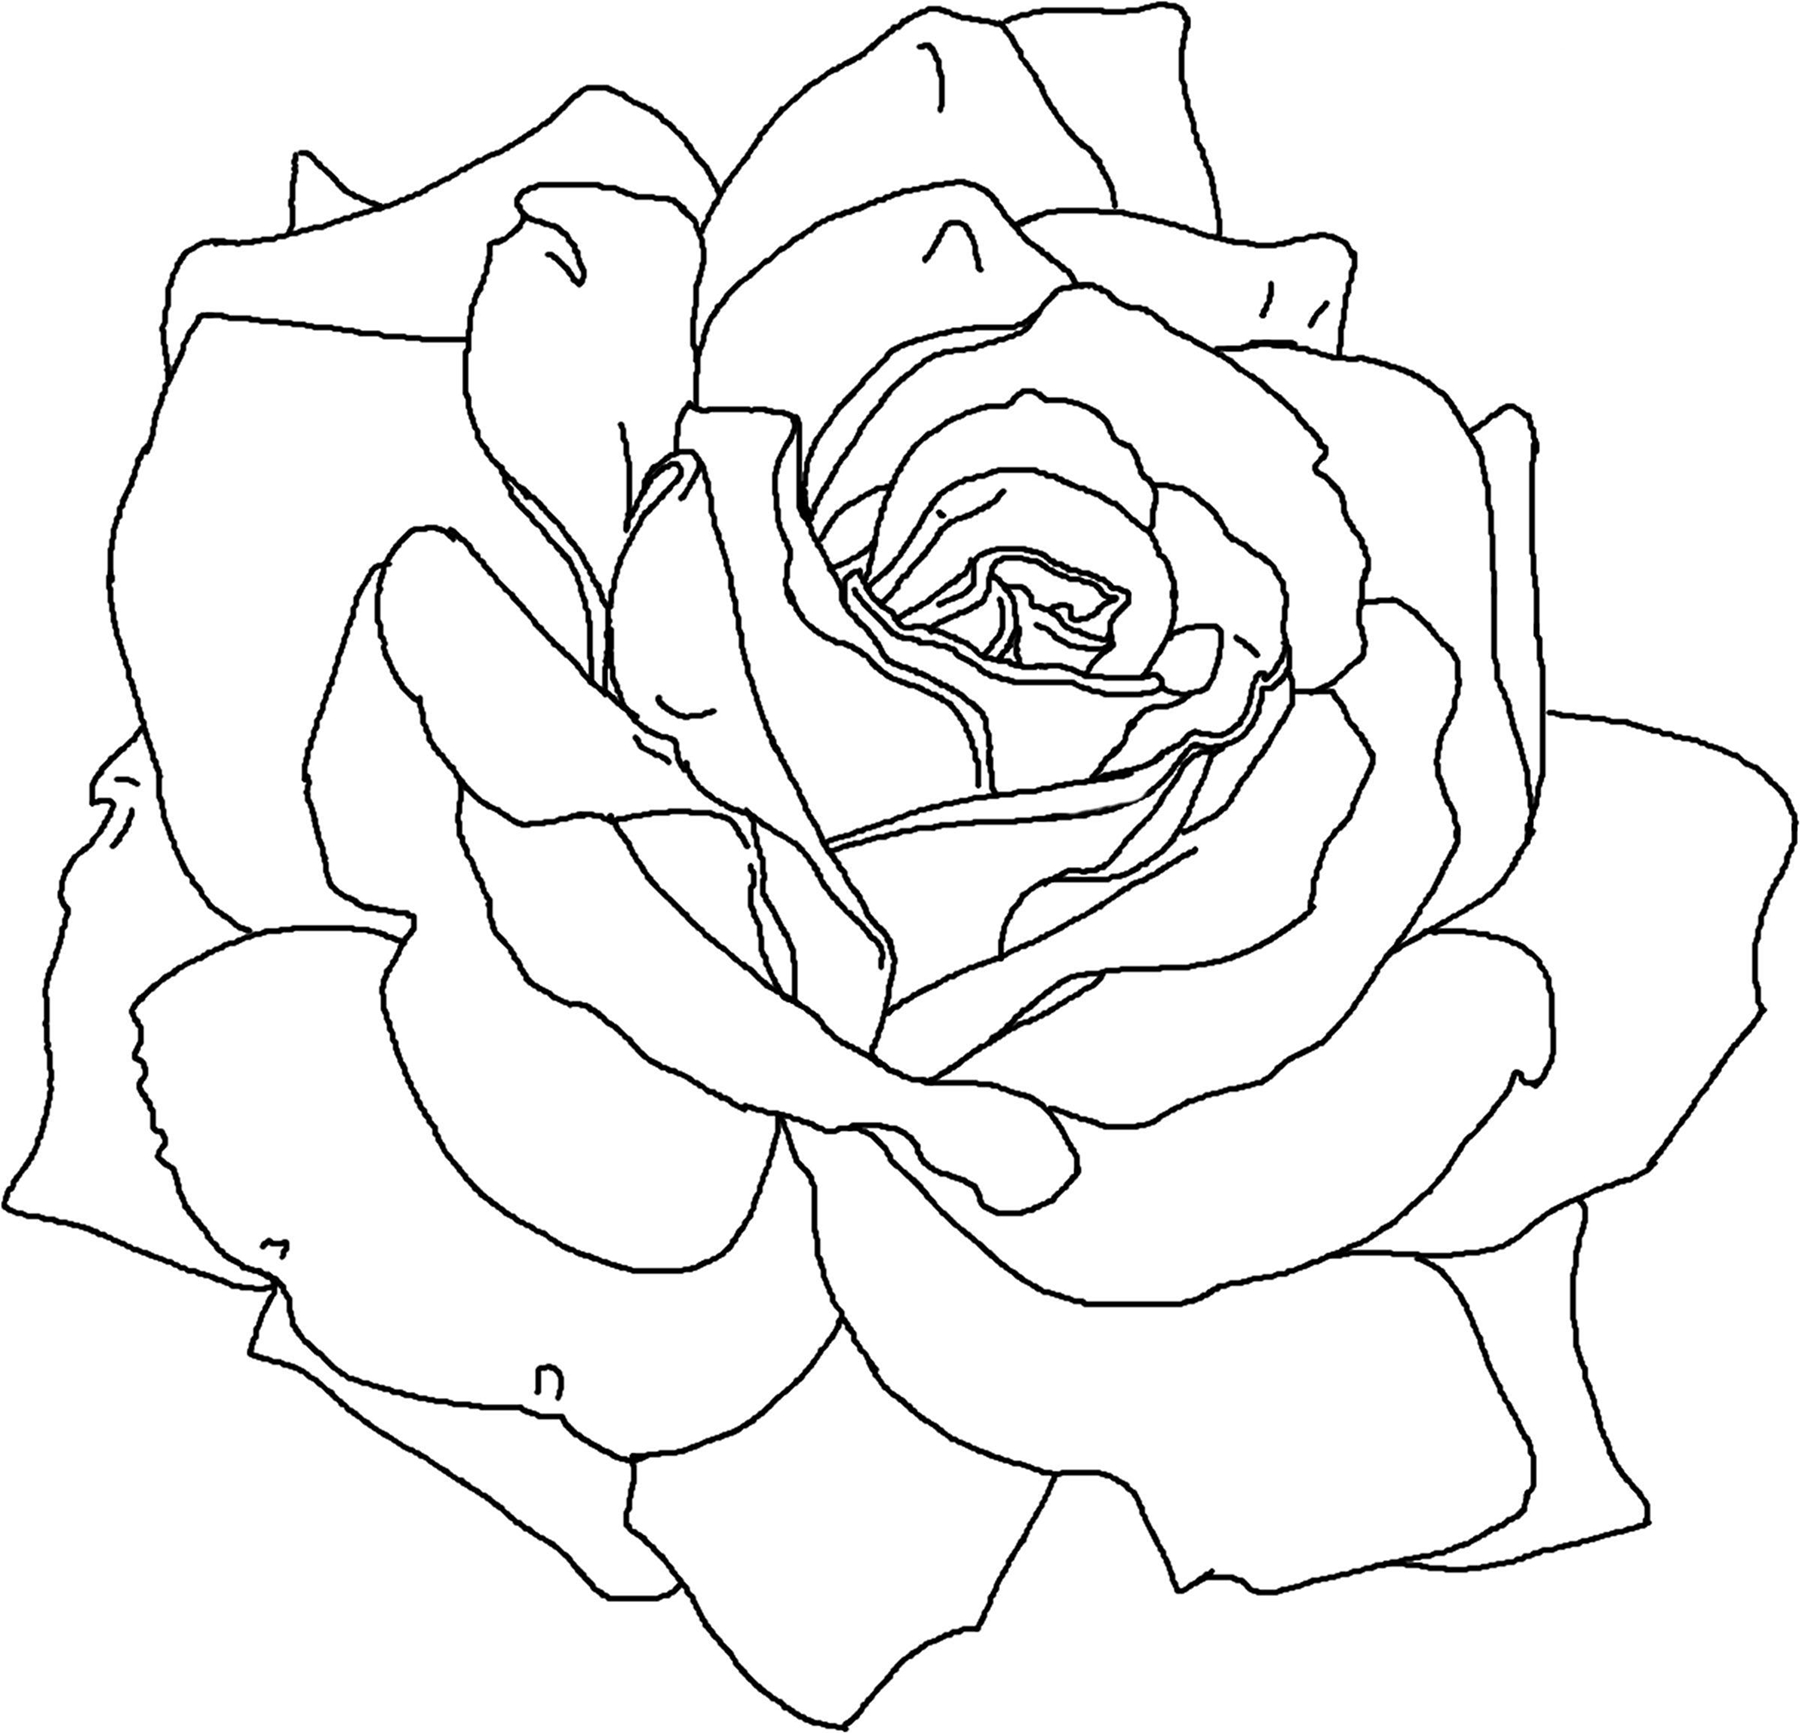 outline pictures of flowers for colouring free printable flower coloring pages for kids best pictures colouring of outline flowers for